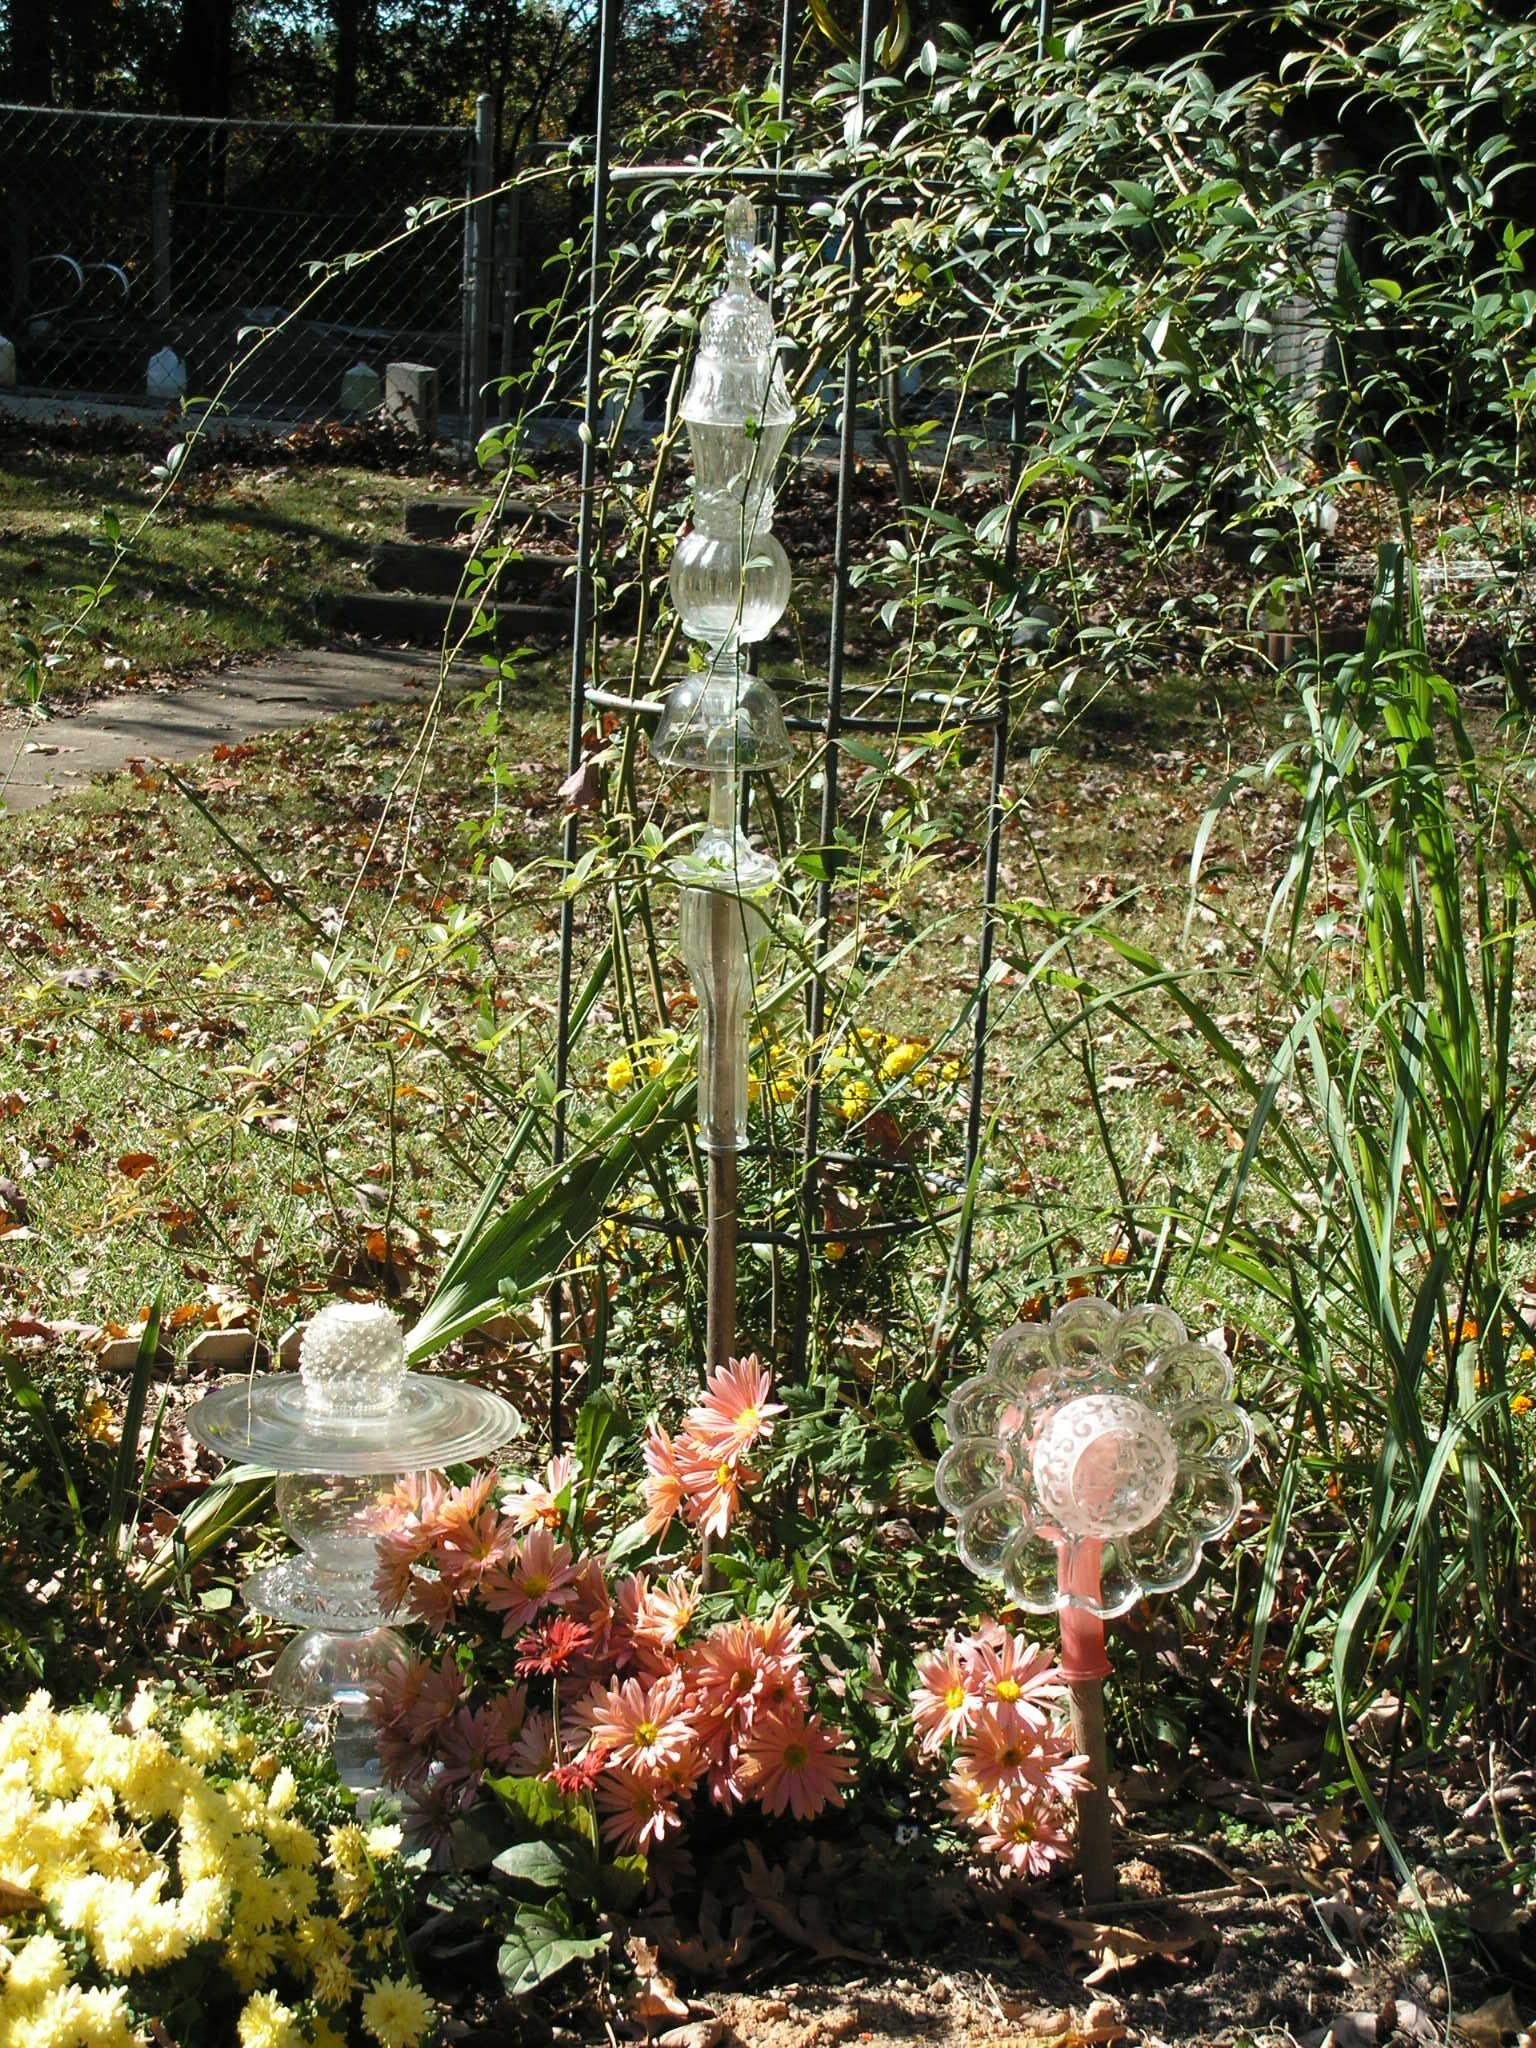 Some of my \'garden glass art\' from pinterest ideas. 2012 MM | We did ...